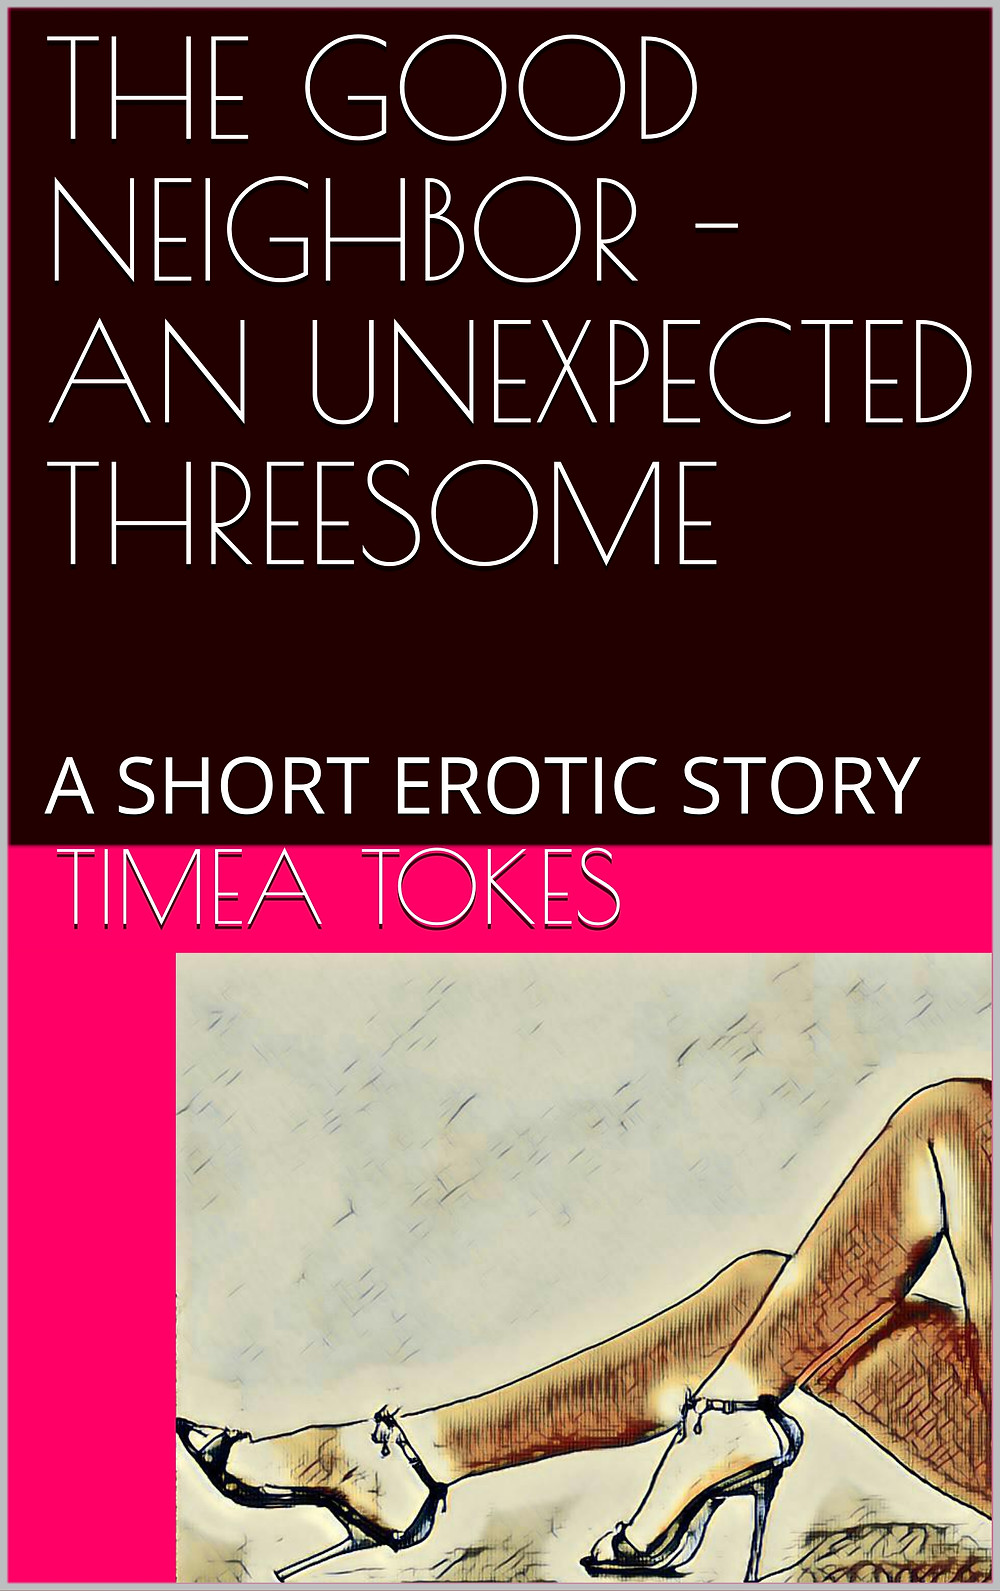 The Good Neighbor - An Unexpected Threesome by Timea Tokes